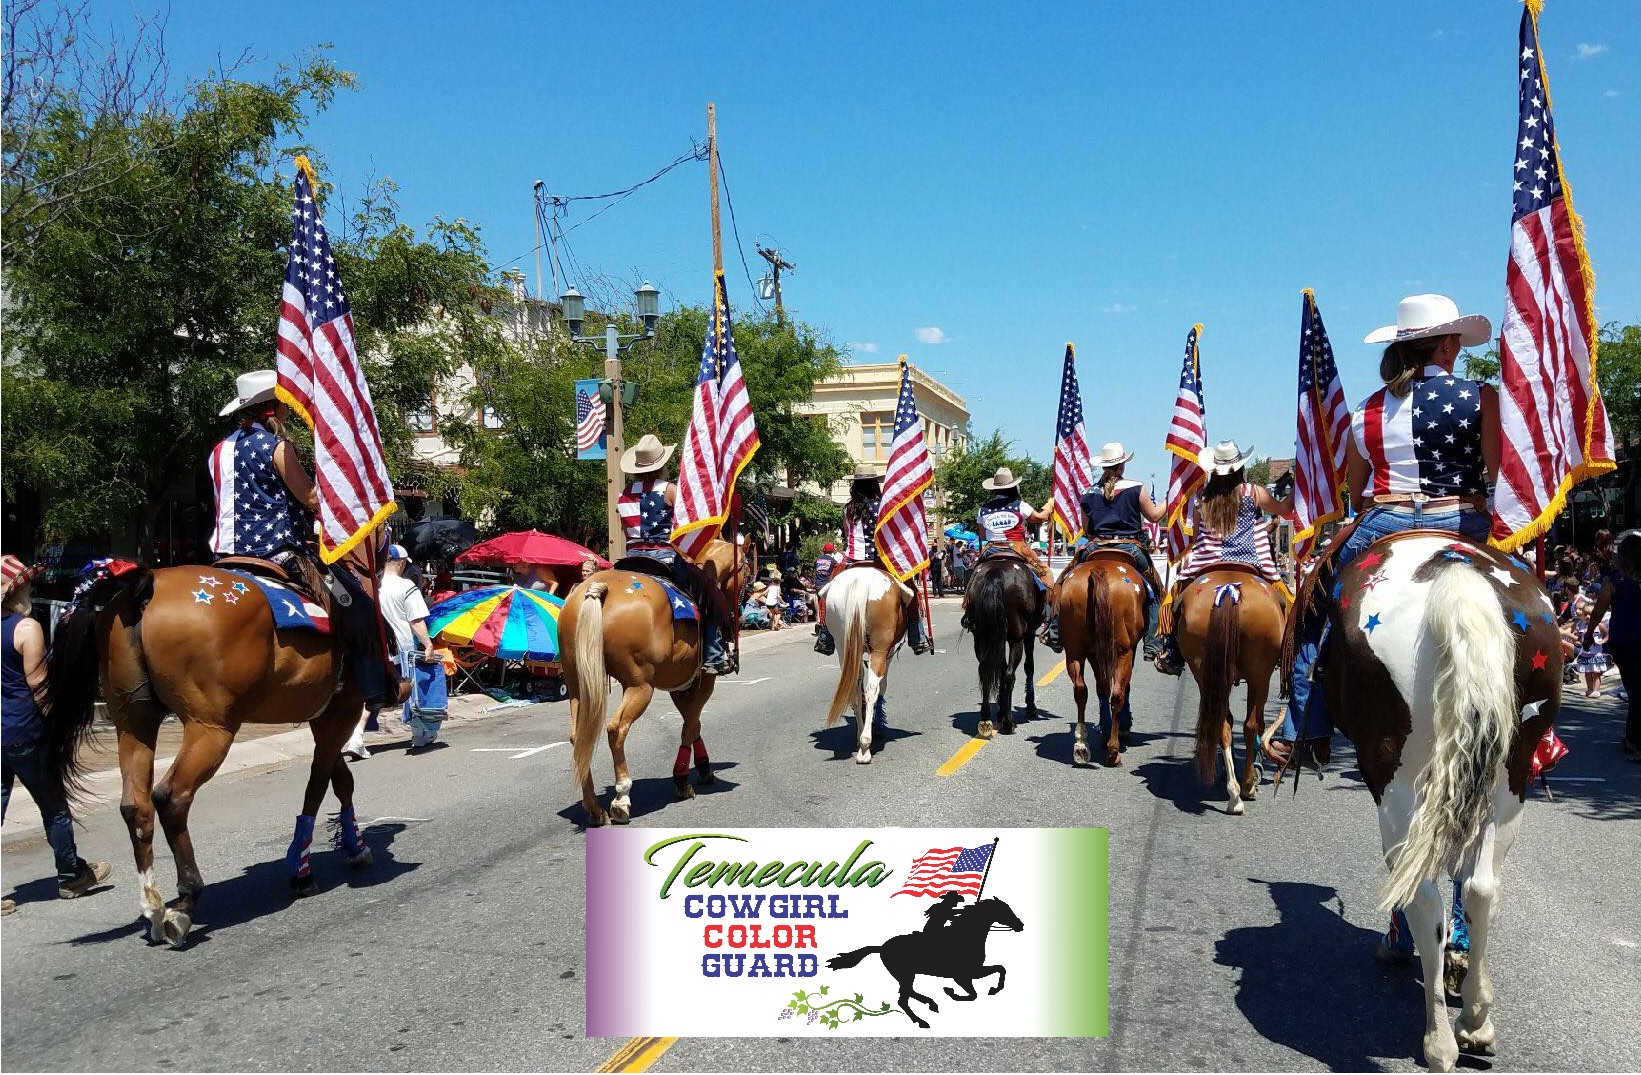 Temecula Cowgirl Color Guard